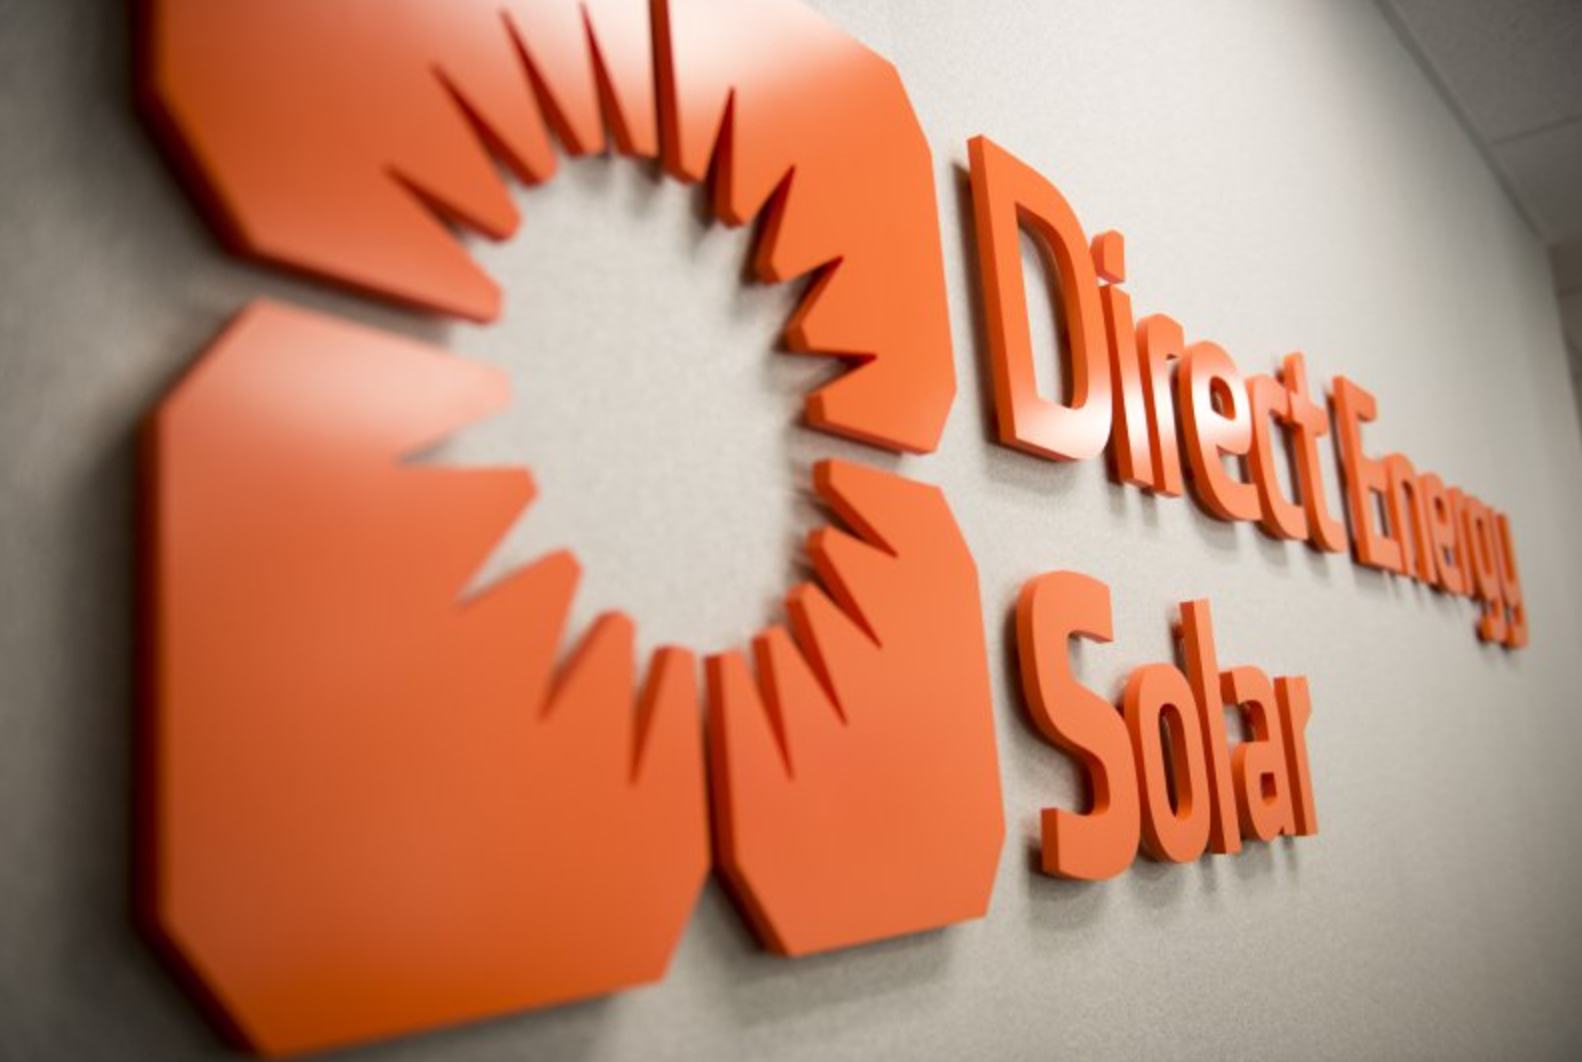 Retailer Direct Energy Pulls Out of the Residential Solar Installation Business